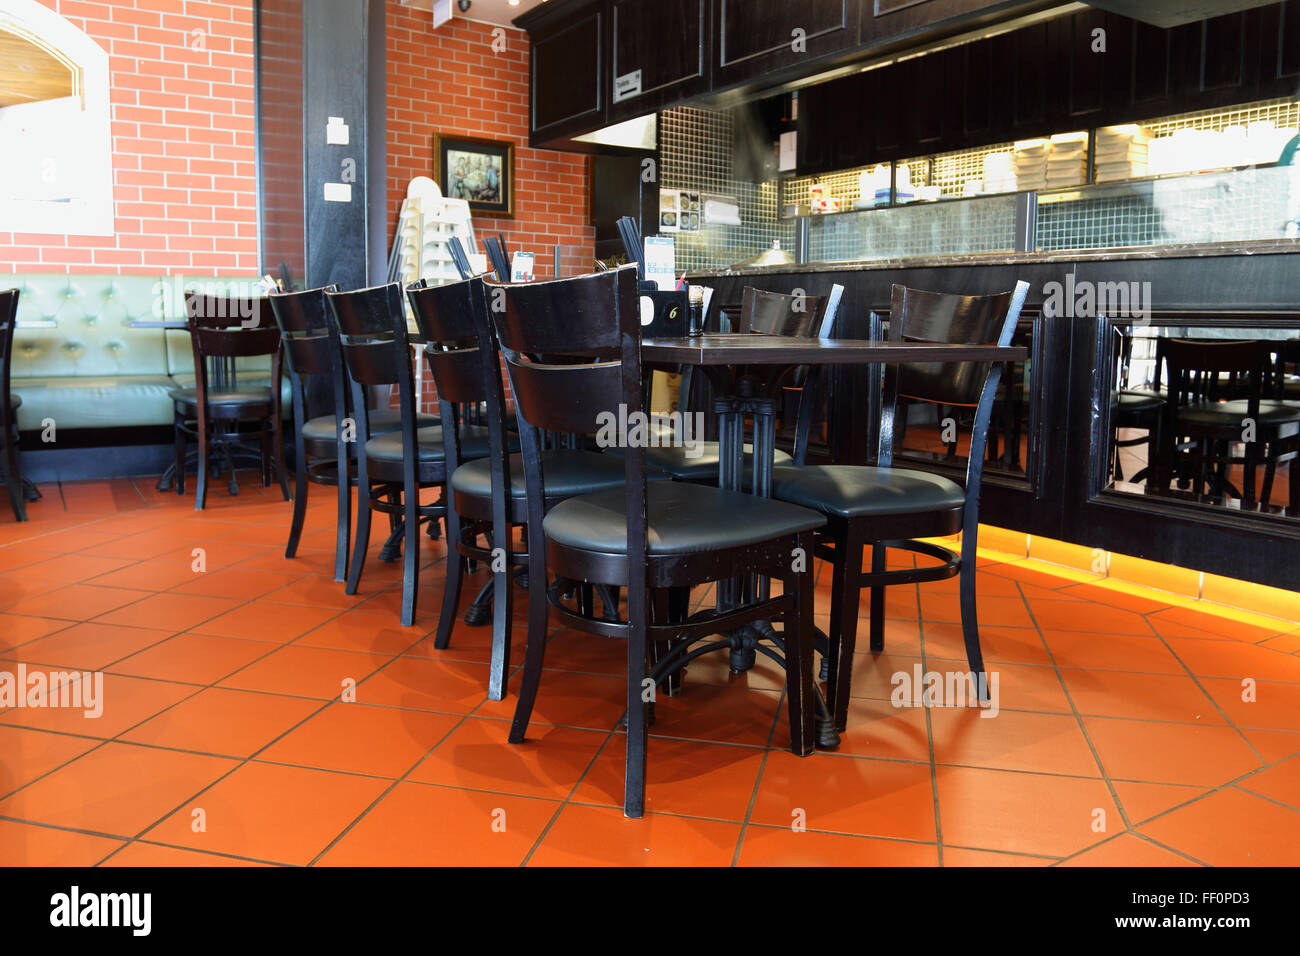 Dining setting in a restaurant with black chairs and tables - Stock Image